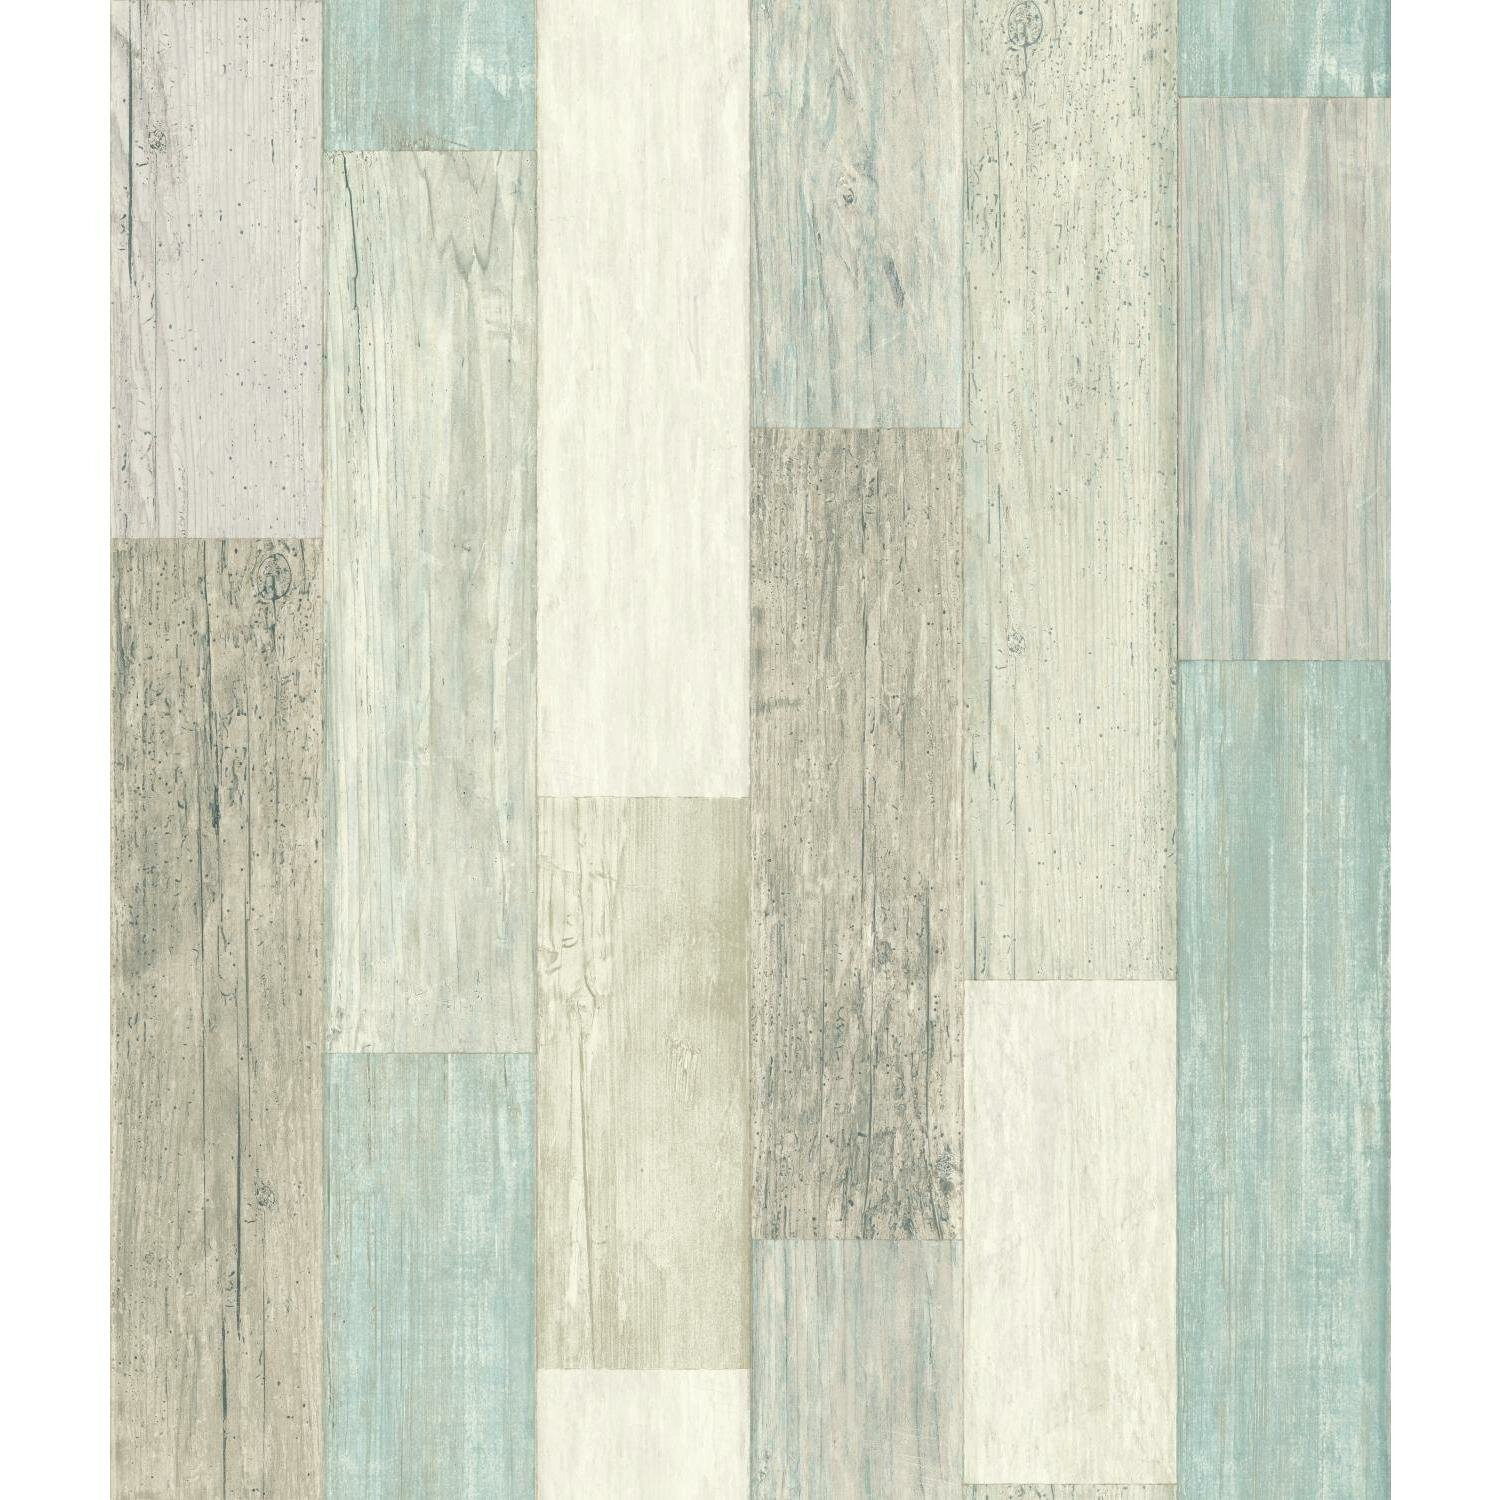 Chronister Coastal Weathered Plank 16 5 L X 20 W Wood And Shiplap Stick Wallpaper Roll Reviews Birch Lane